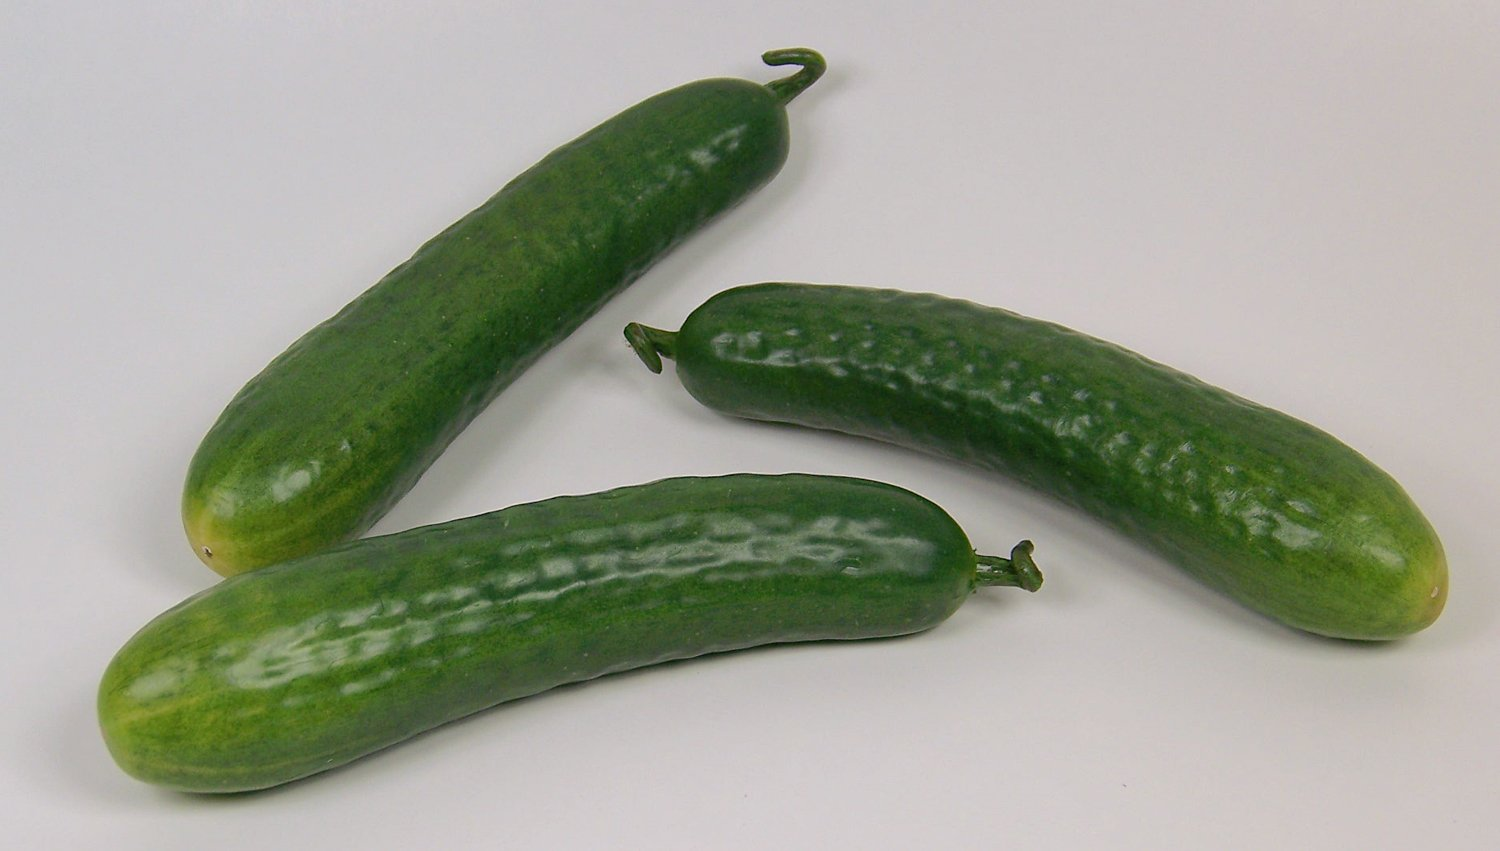 Designer-Decorative-Two-2-Artificial-Faux-Fake-Small-Cucumber-Vegetable